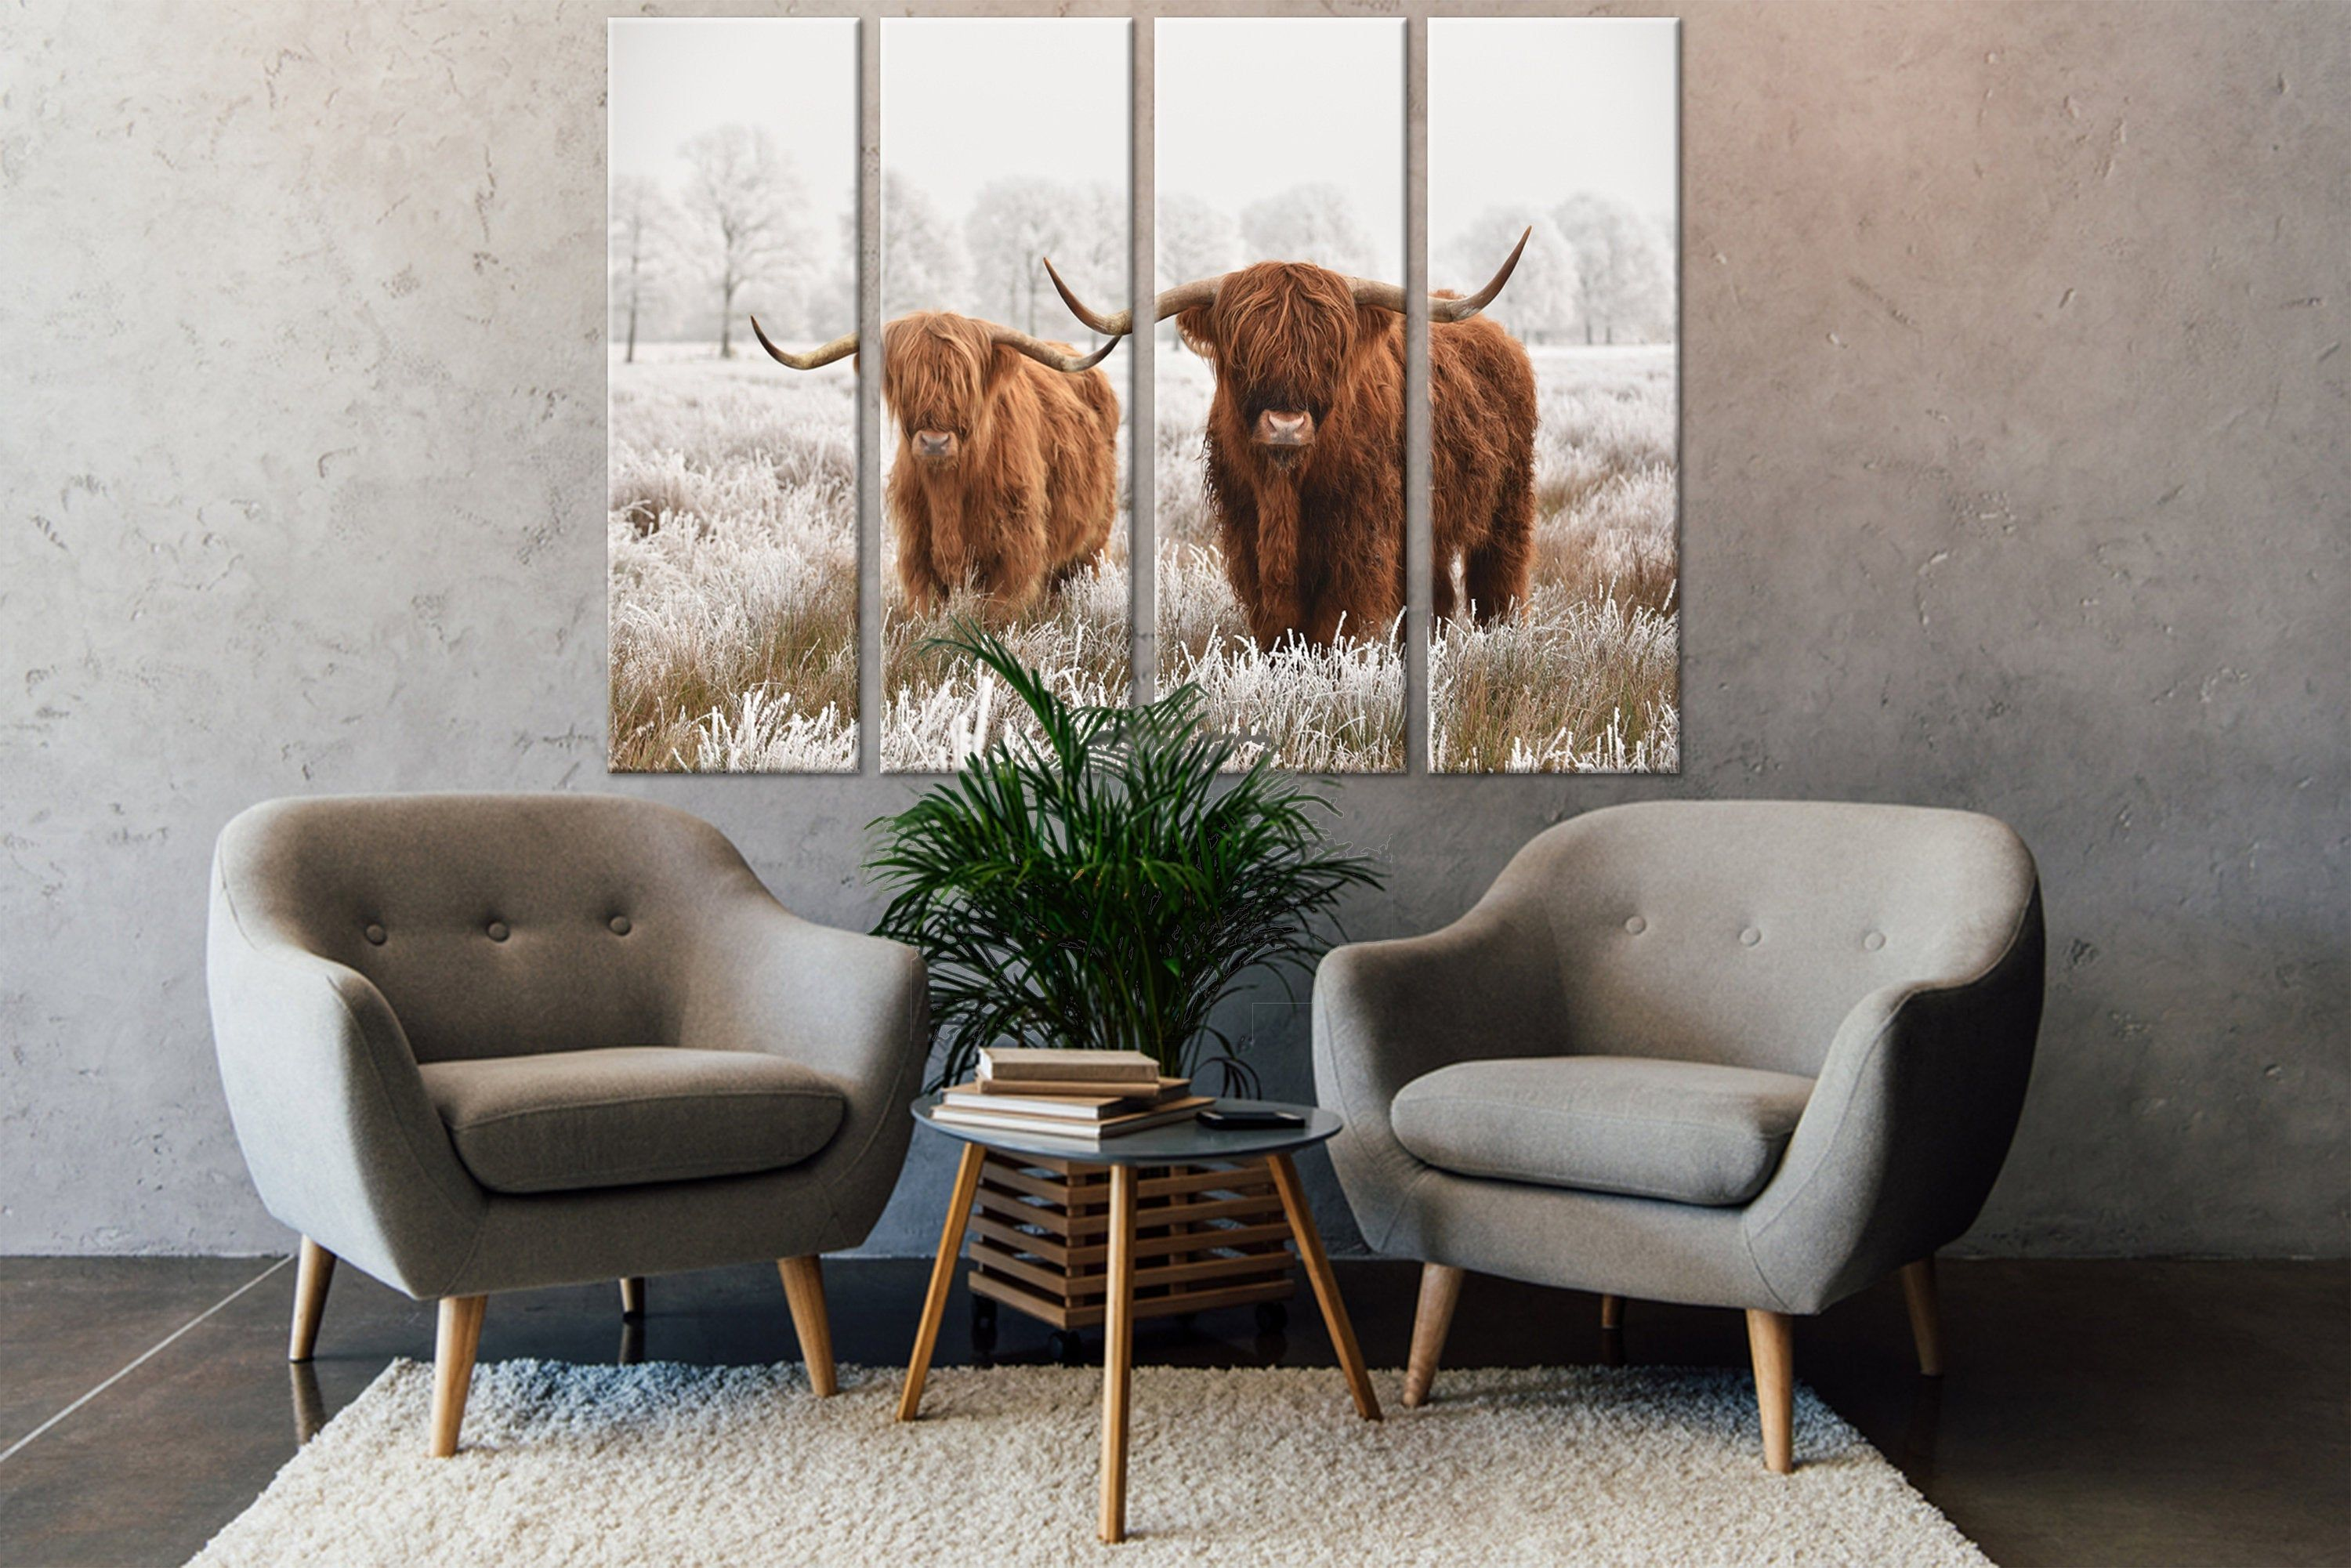 Canvas Wall Art Wall Hangings Scenic Winter Landscape Scottish Highlands In The Drenthe Region Of The Netherlands Wild Life Landscape Canvas In 2020 Arm Chairs Living Room Small Living Rooms Decor